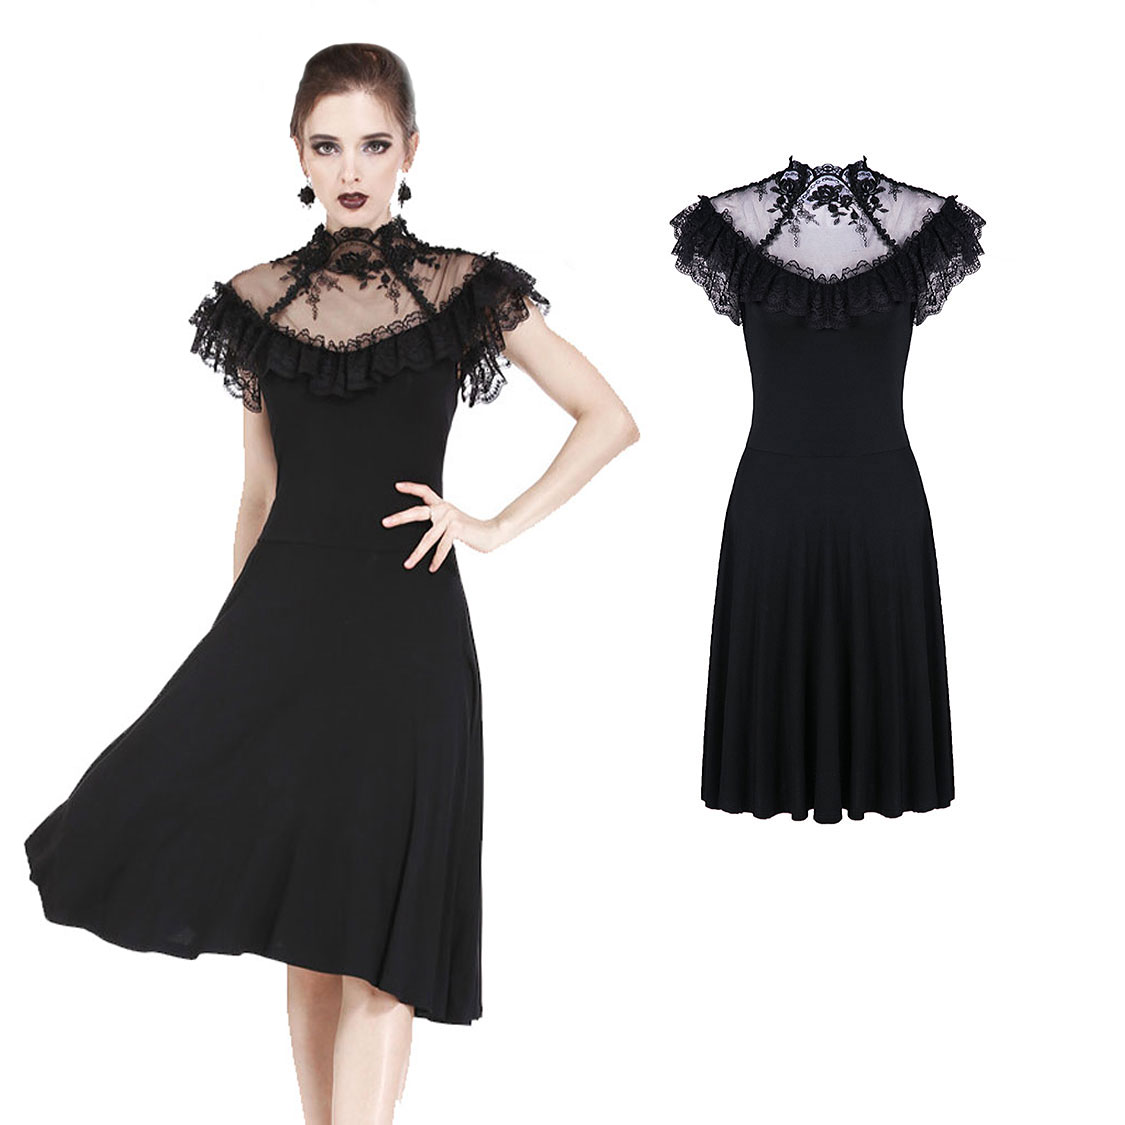 long schwarz kleid for funeral authentic 4bbf7 11a0a